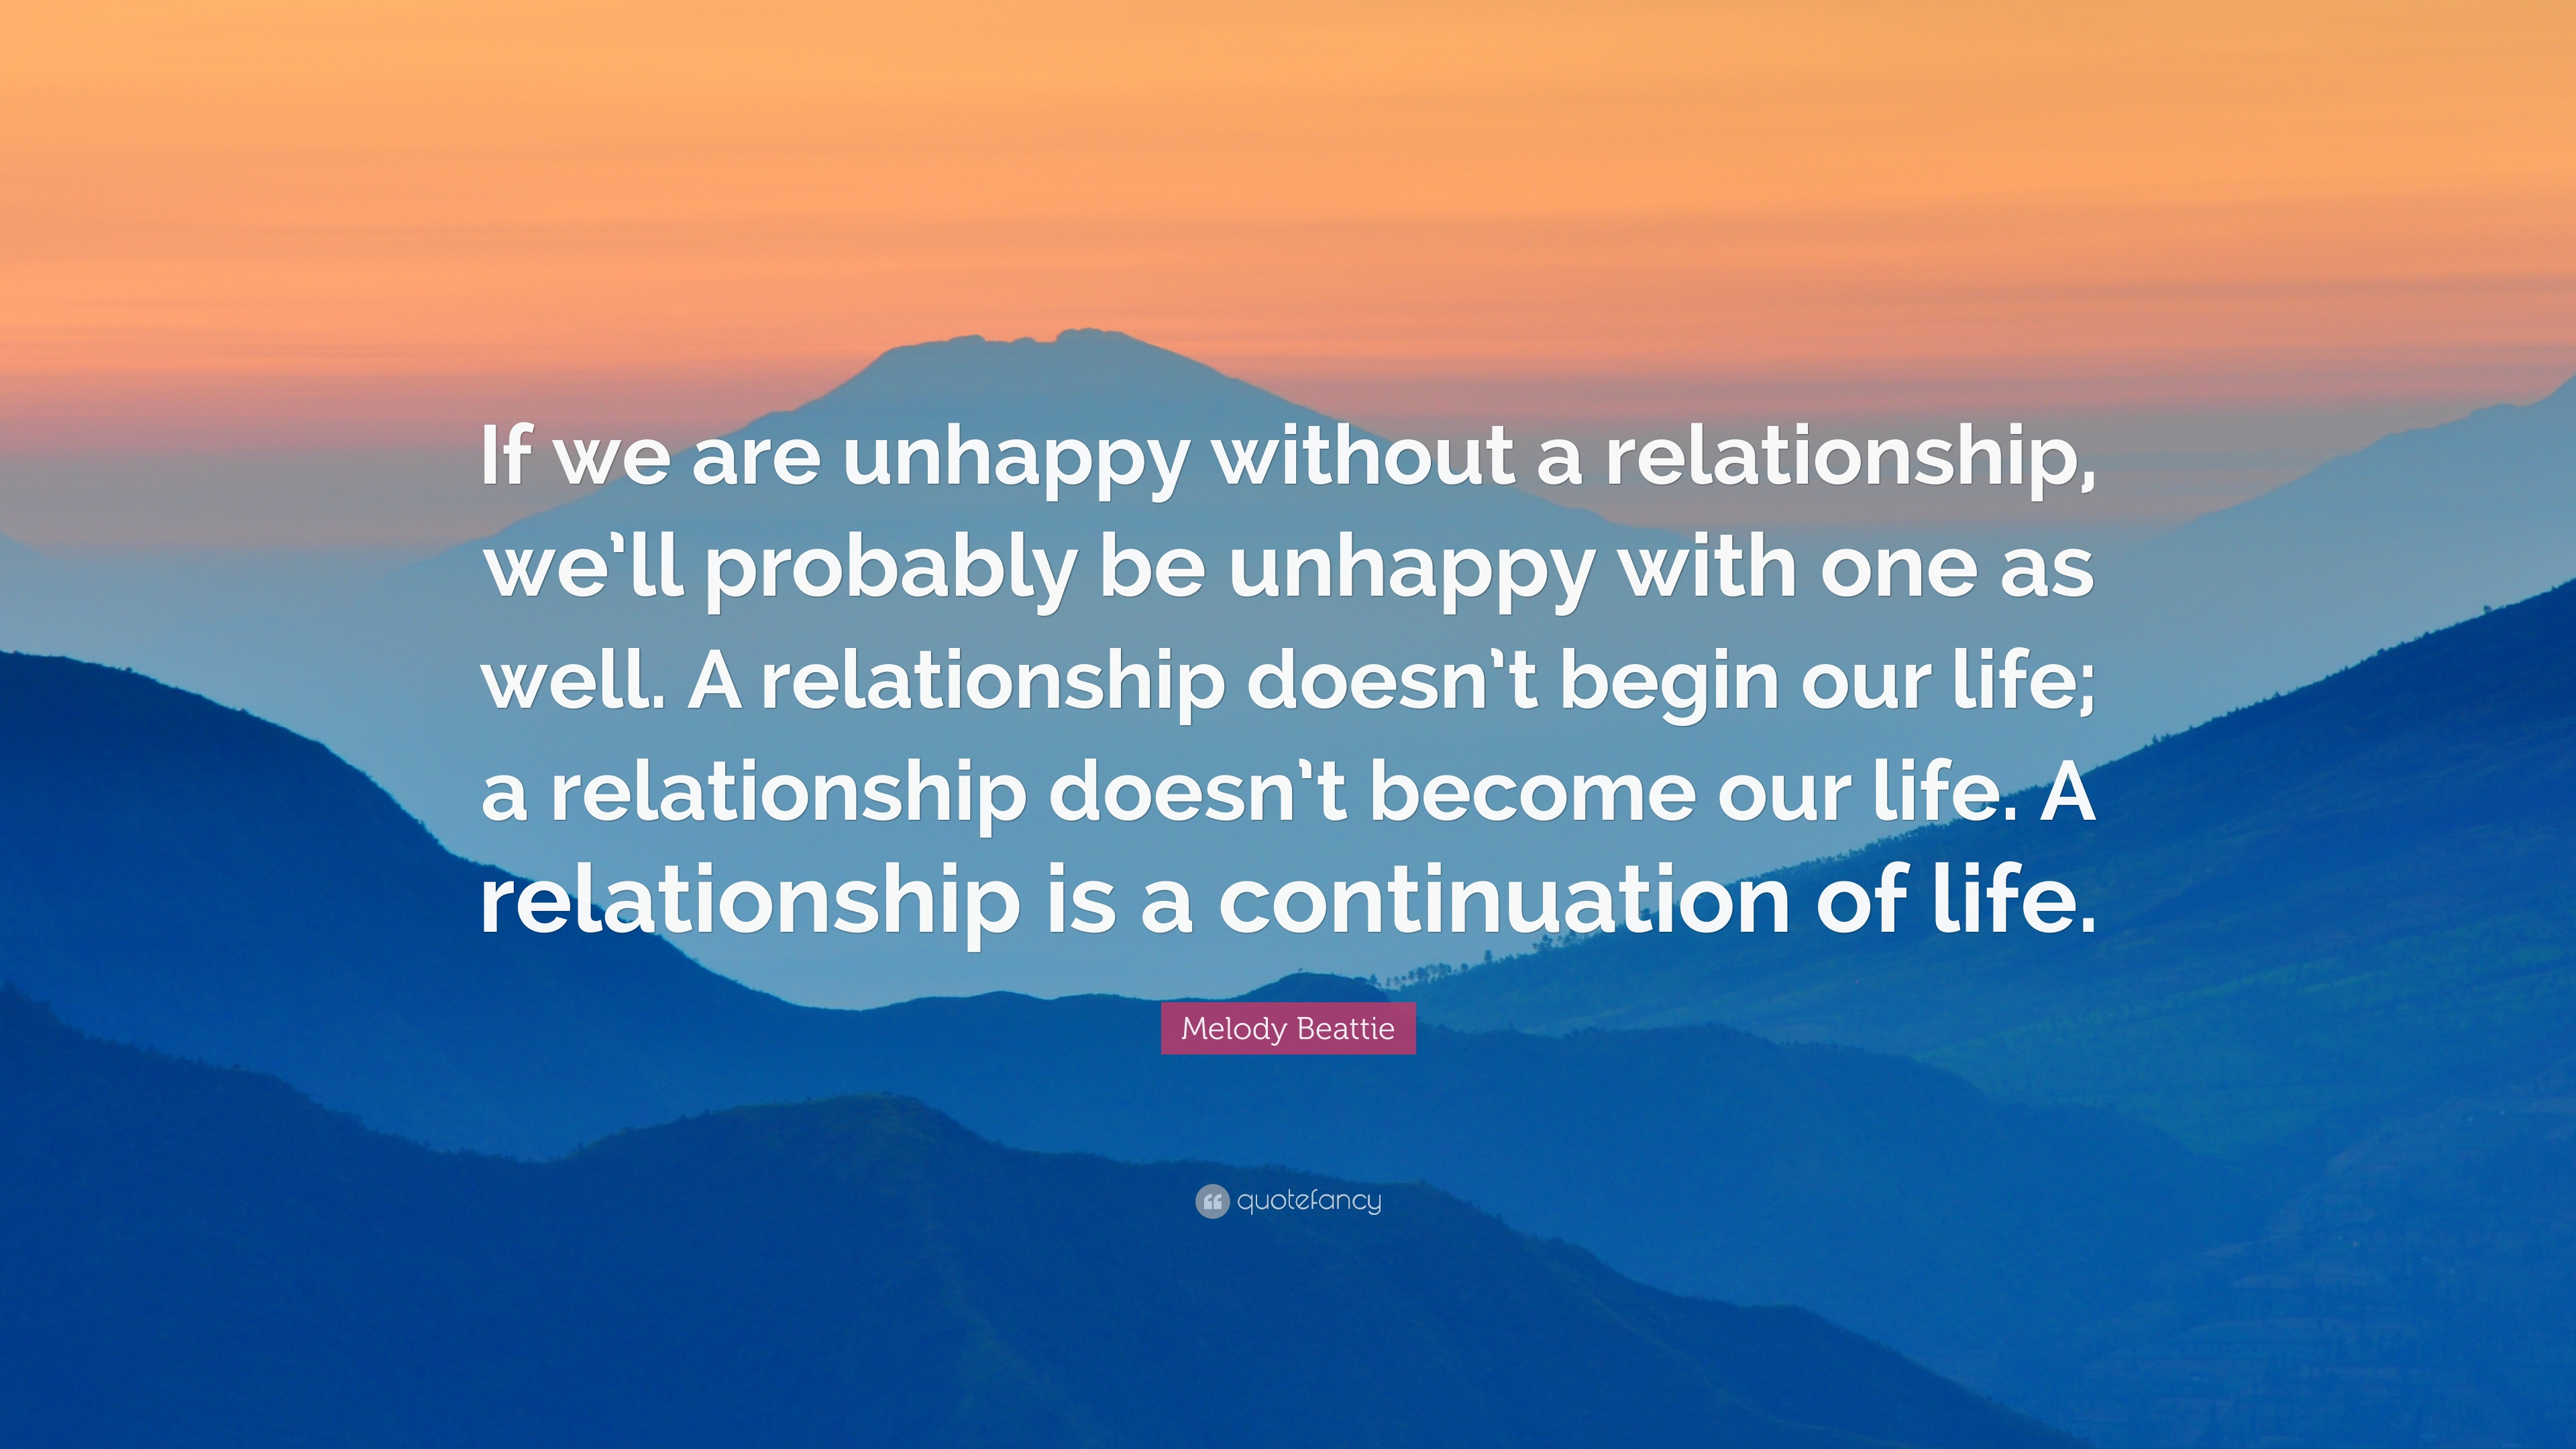 Melody Beattie Quote If We Are Unhappy Without A Relationship We